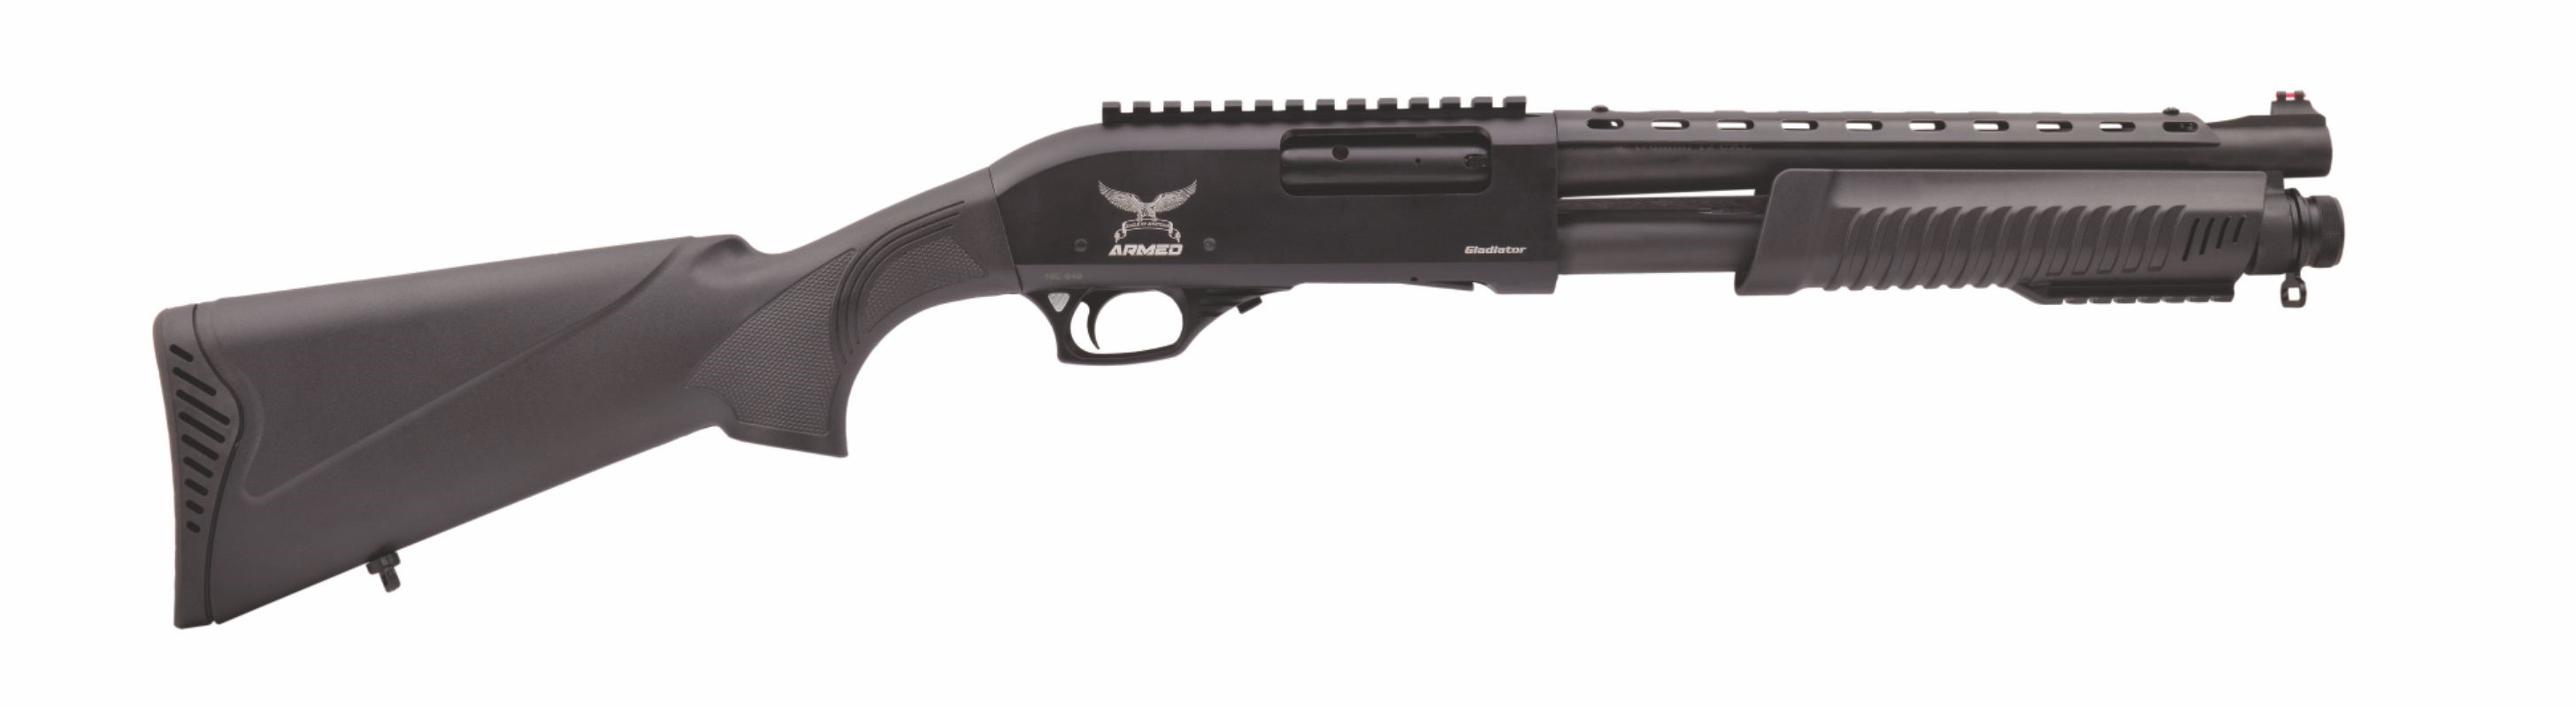 "Tactical G1 Pump Action, 12 GA,13 "" barrel w/ Heatshield & Rail"